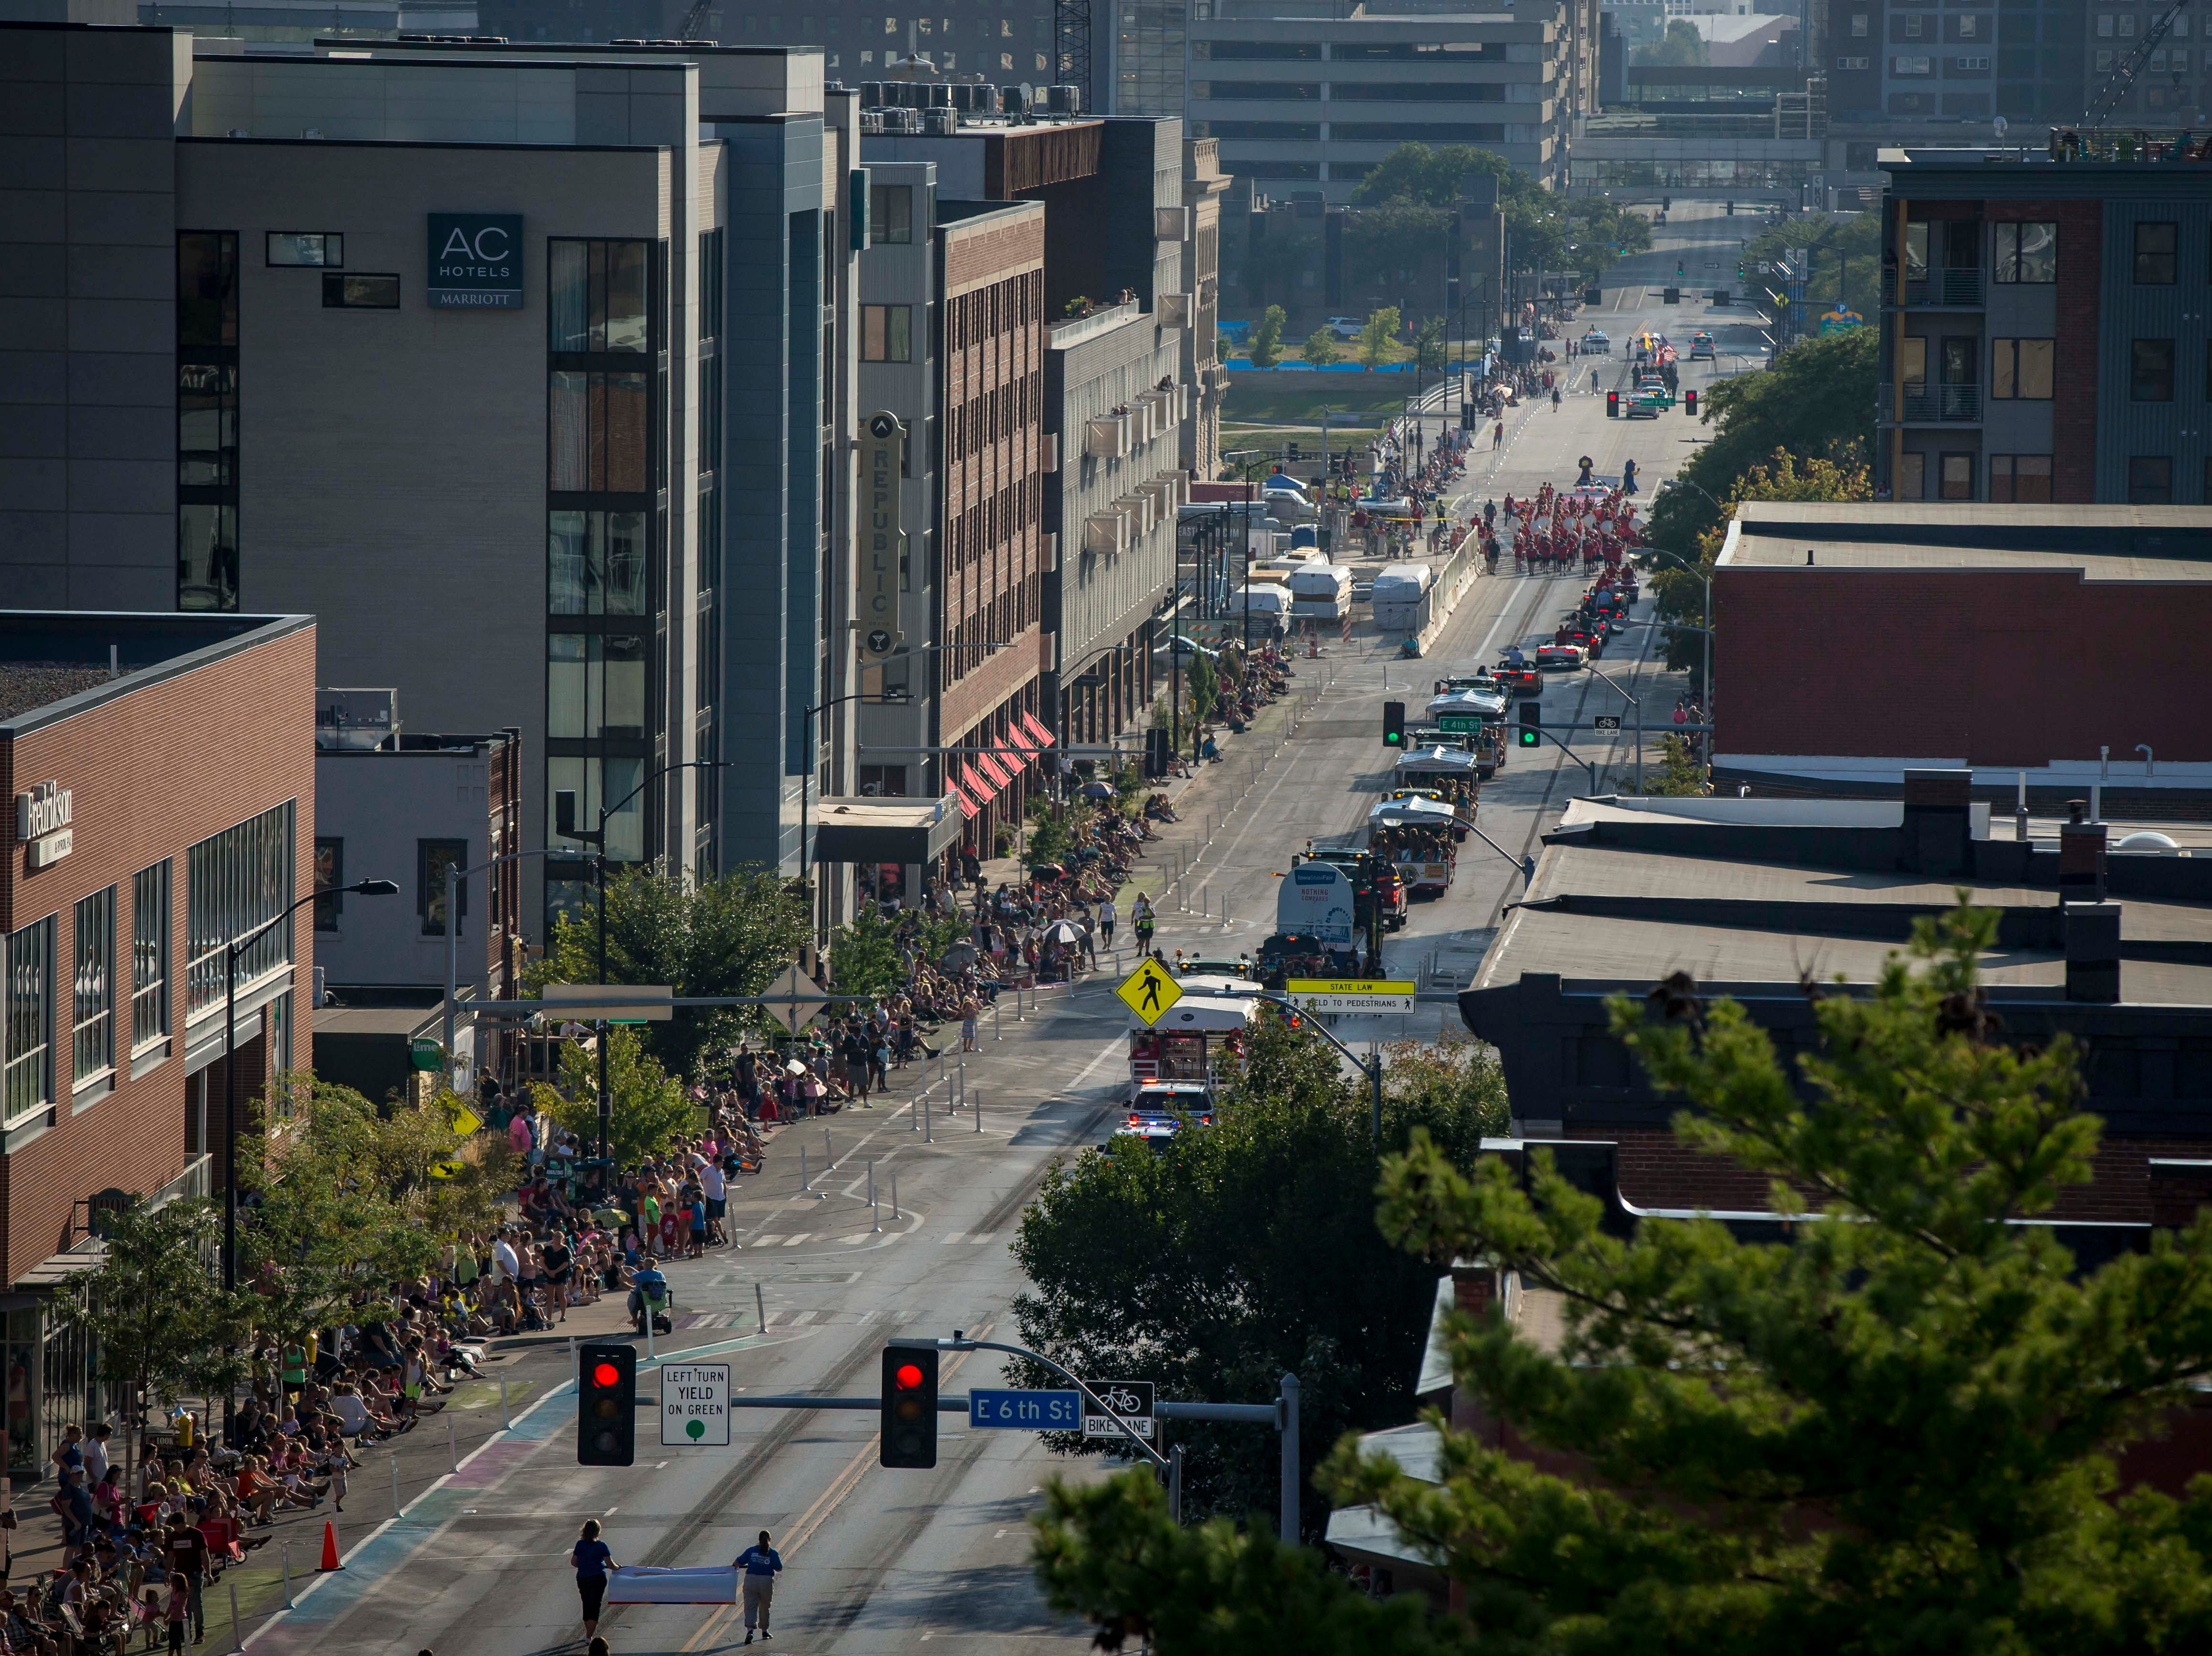 The 2018 Iowa State Fair parade moves from the Statehouse to downtown Des Moines Wednesday, Aug. 8, 2018. The Iowa State Fair runs from Aug. 9Ð19.